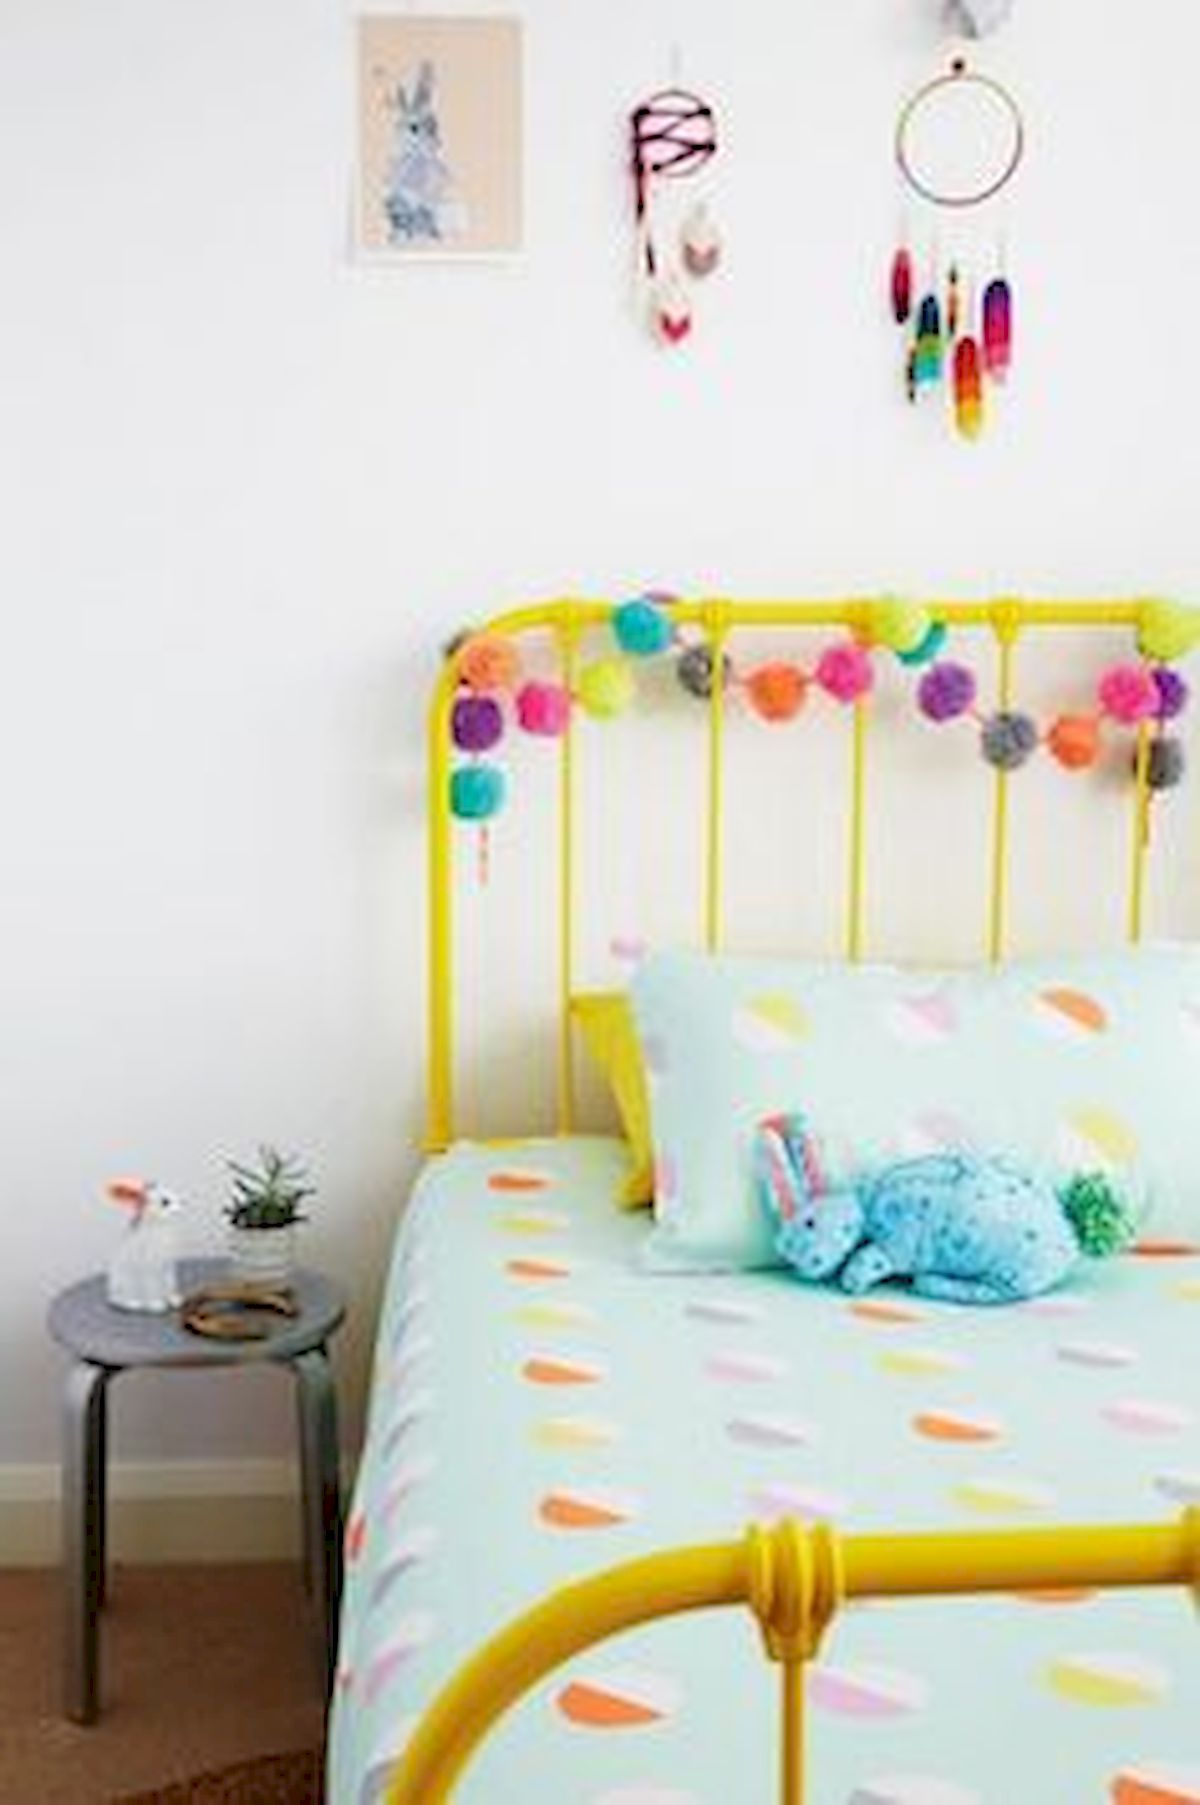 60 Cute DIY Bedroom Design and Decor Ideas for Kids (51)